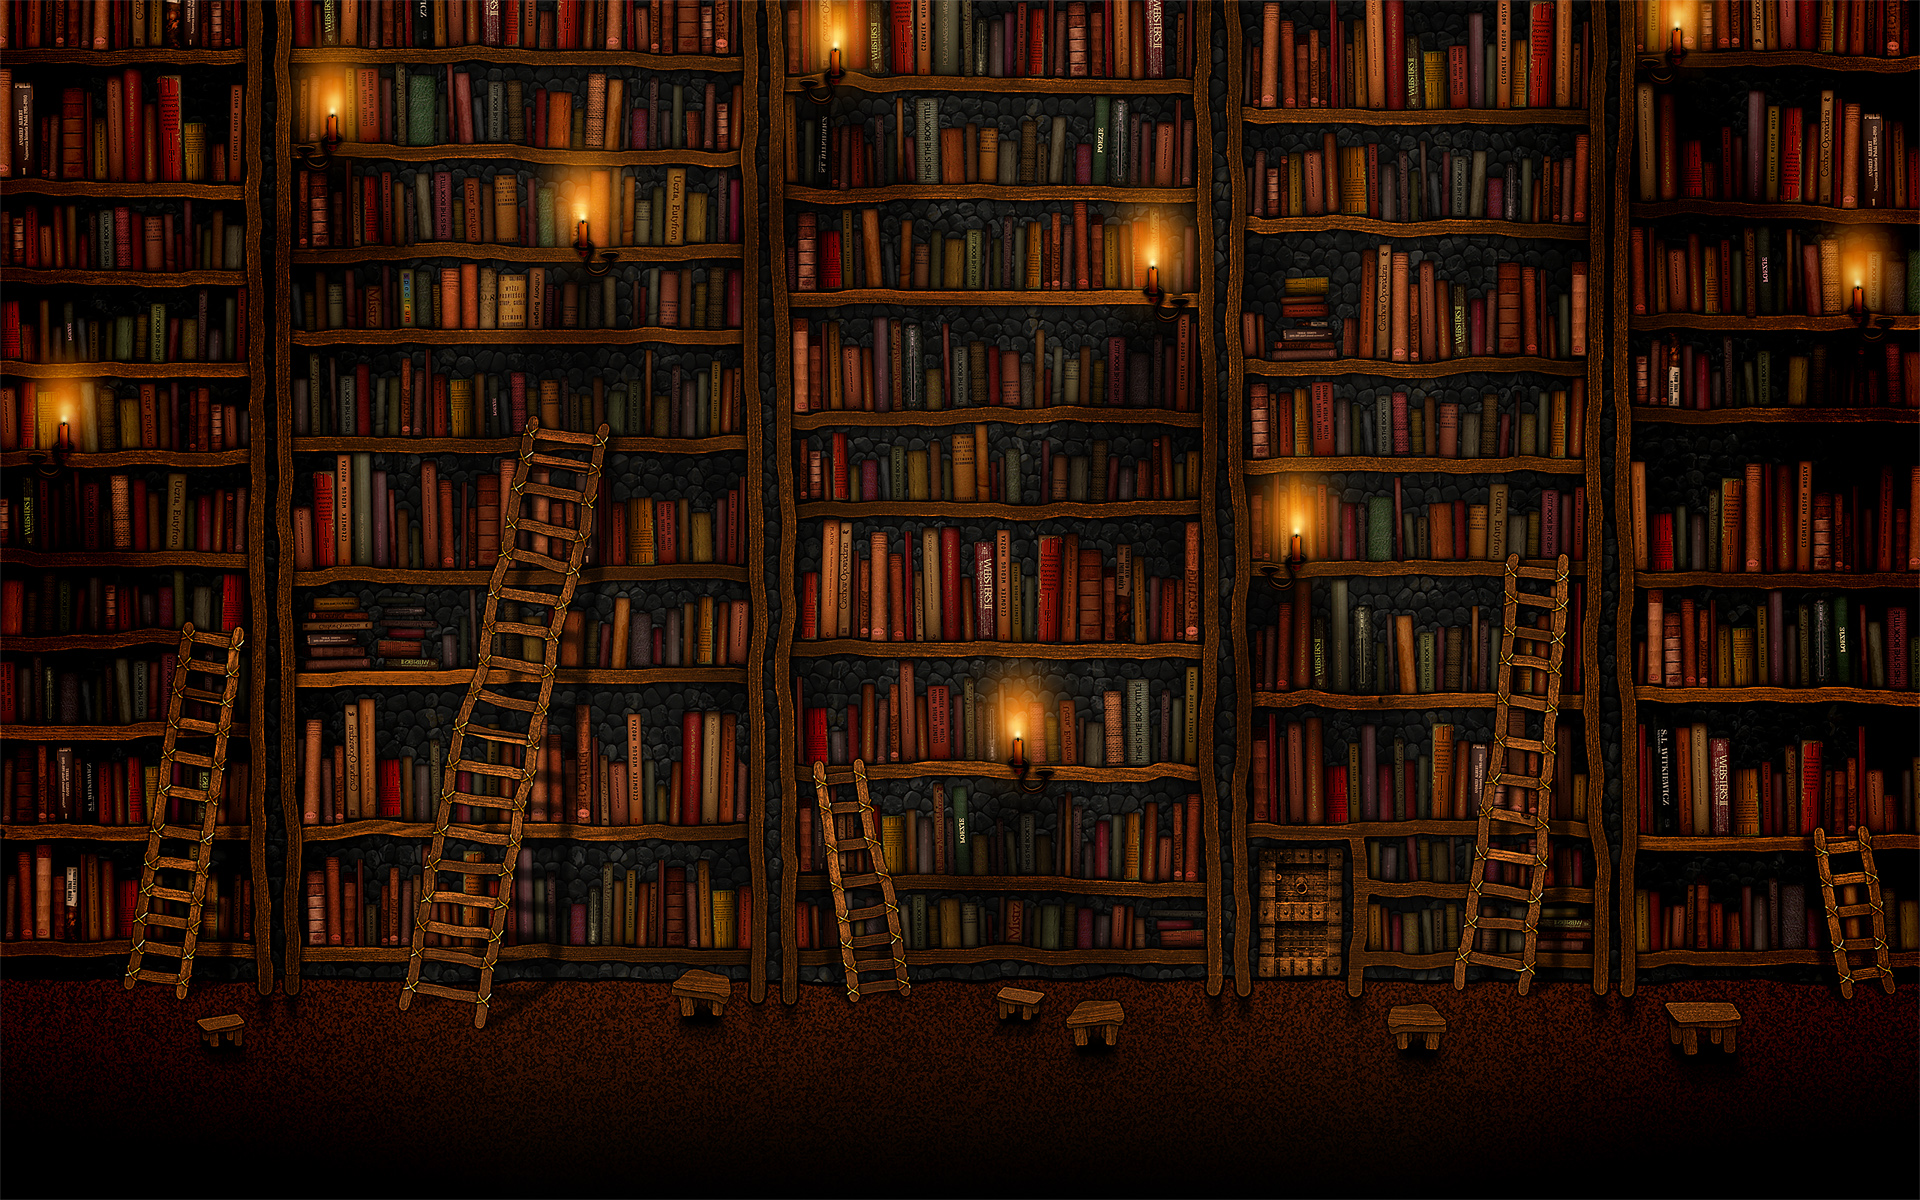 Books Wallpaper Desktop